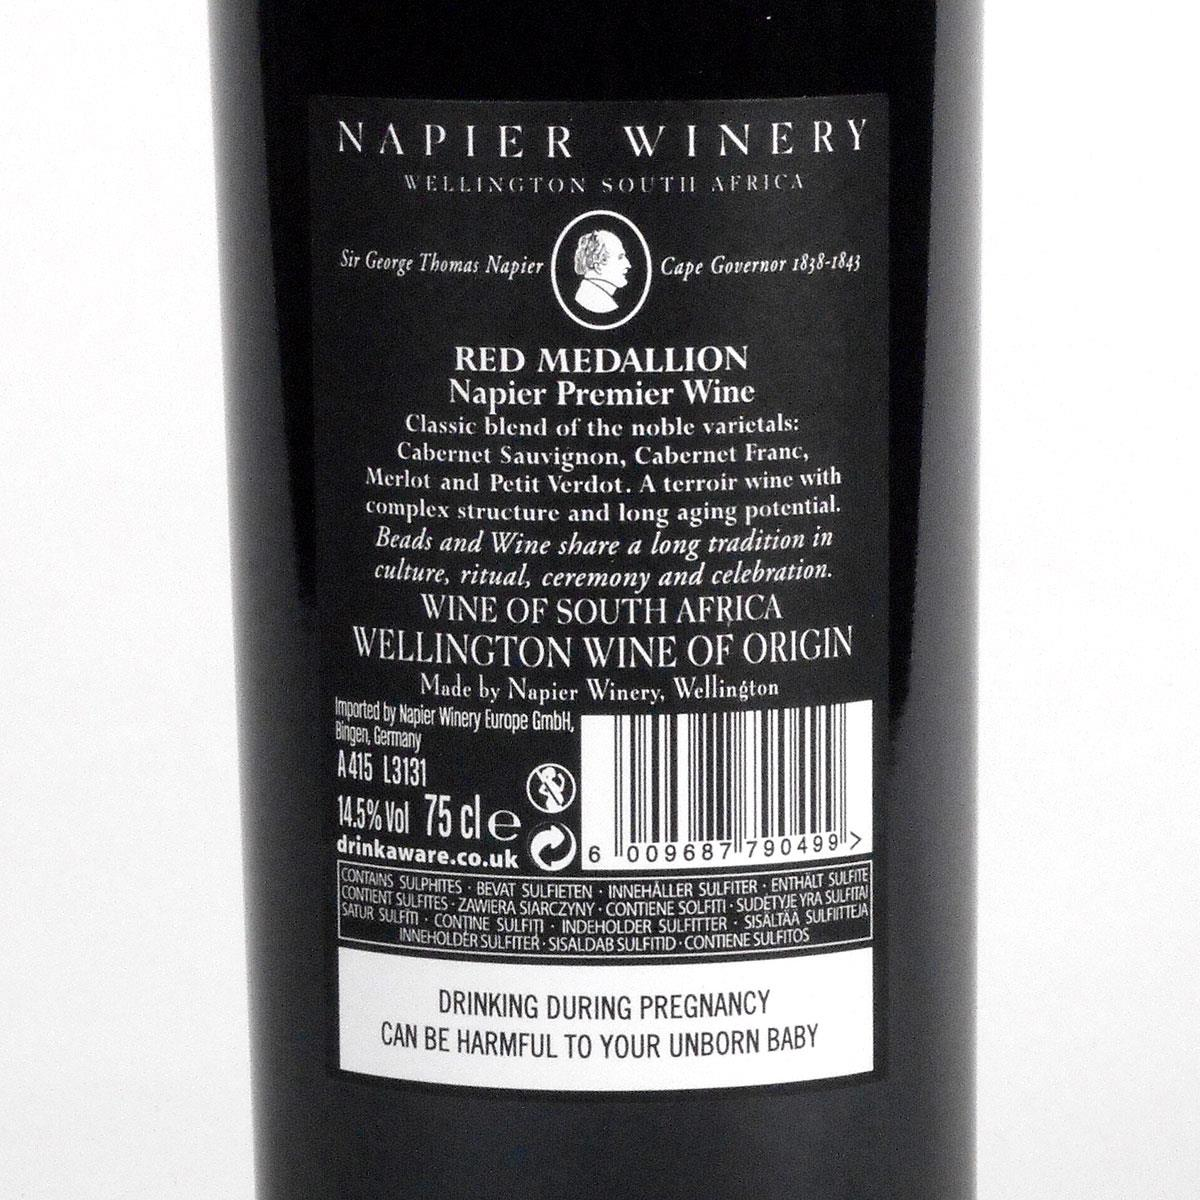 Napier Winery: 'Red Medallion' 2013 - Bottle Rear Label